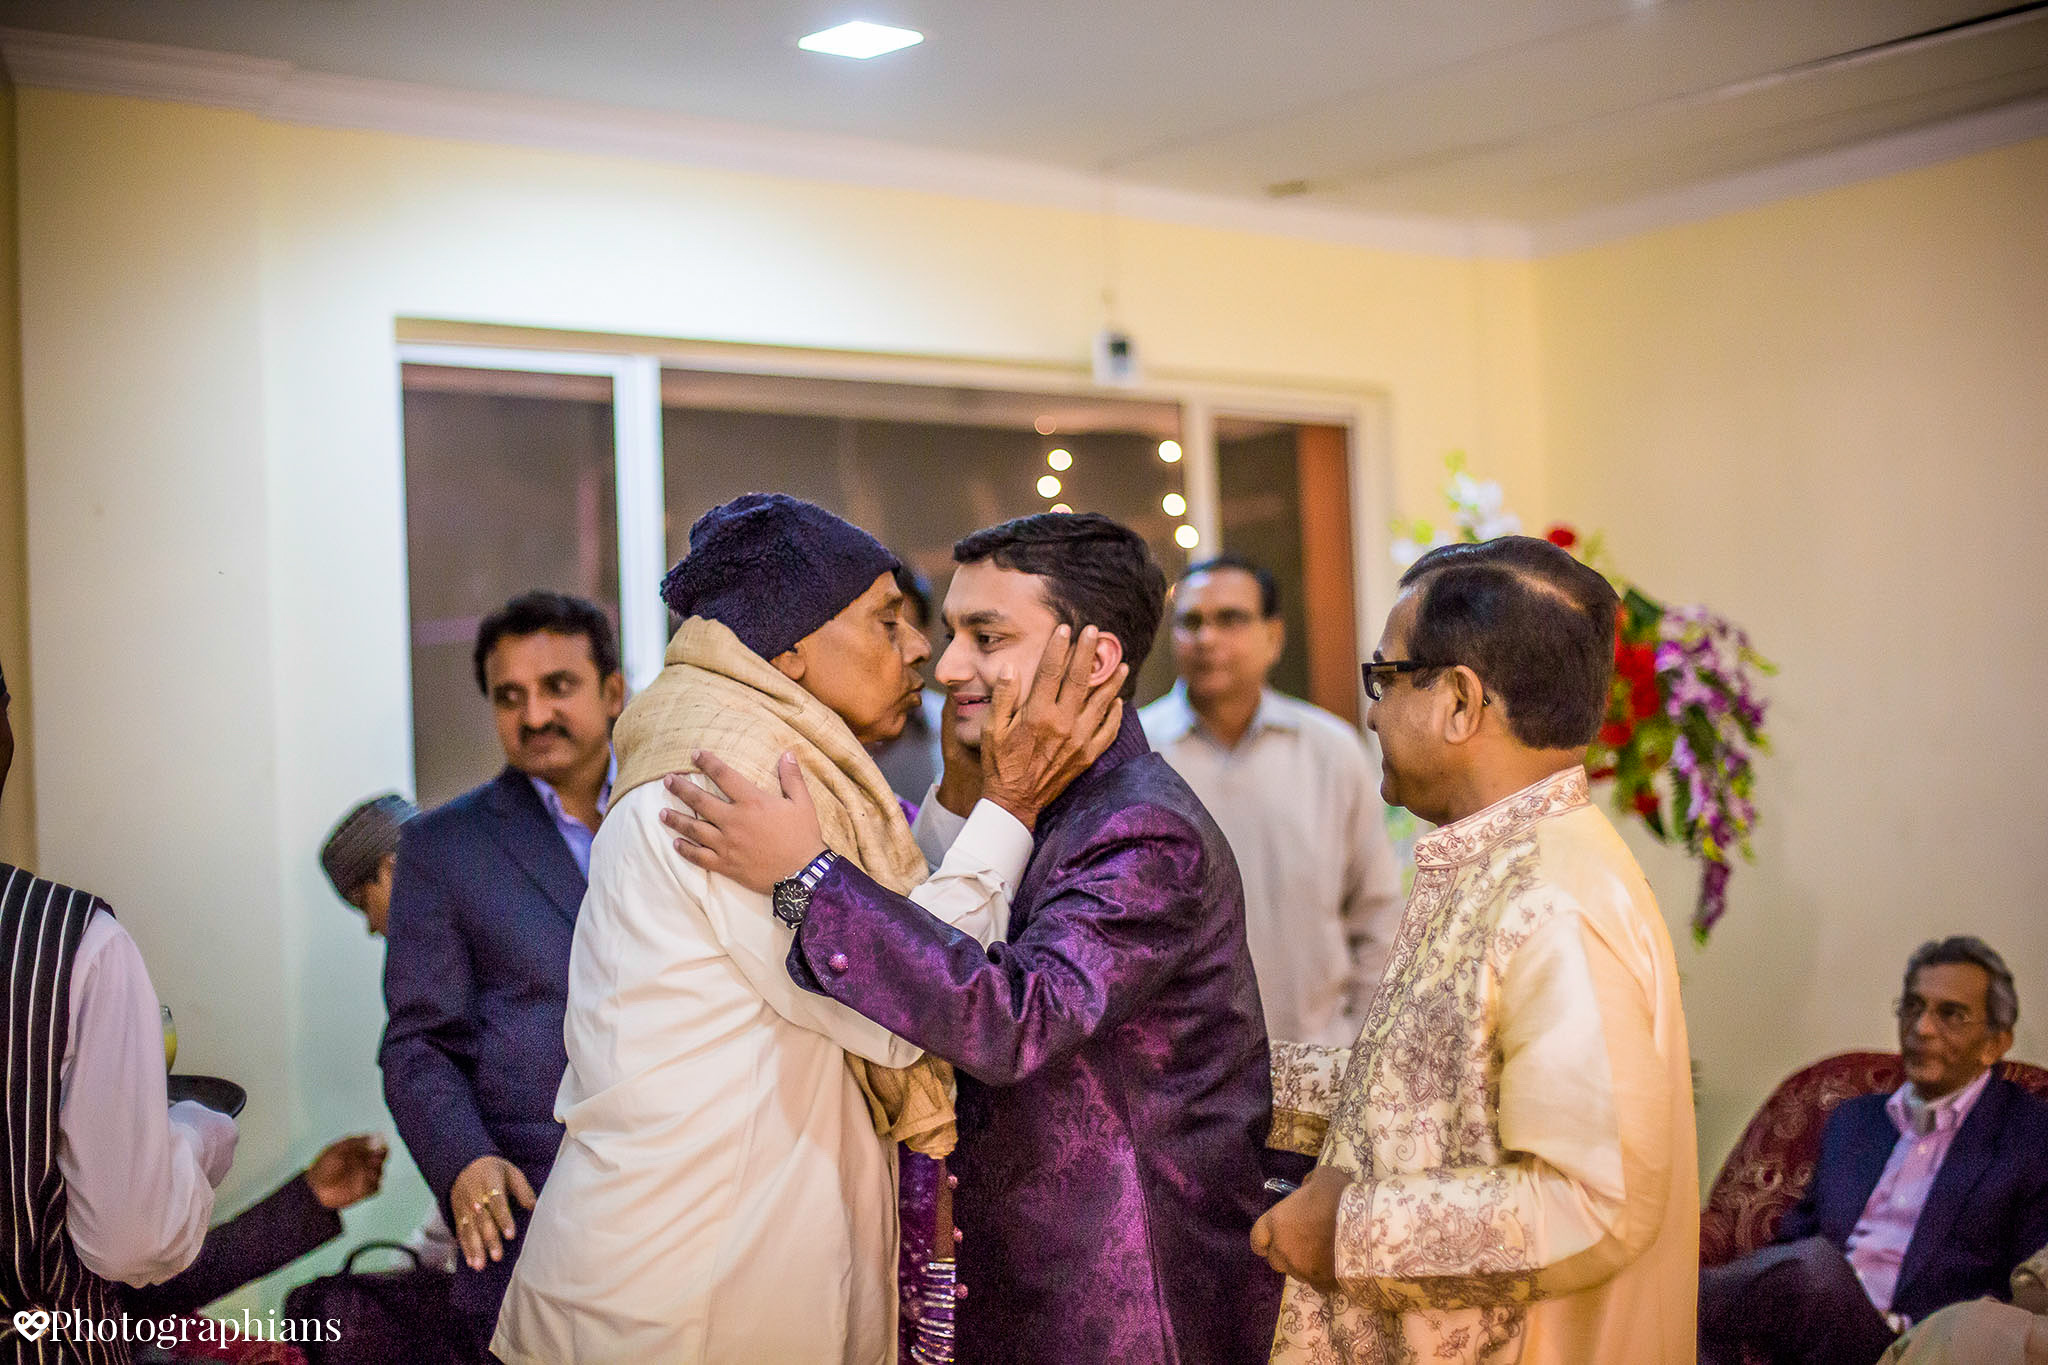 Photographians_Indian_Wedding_Durgapur_049